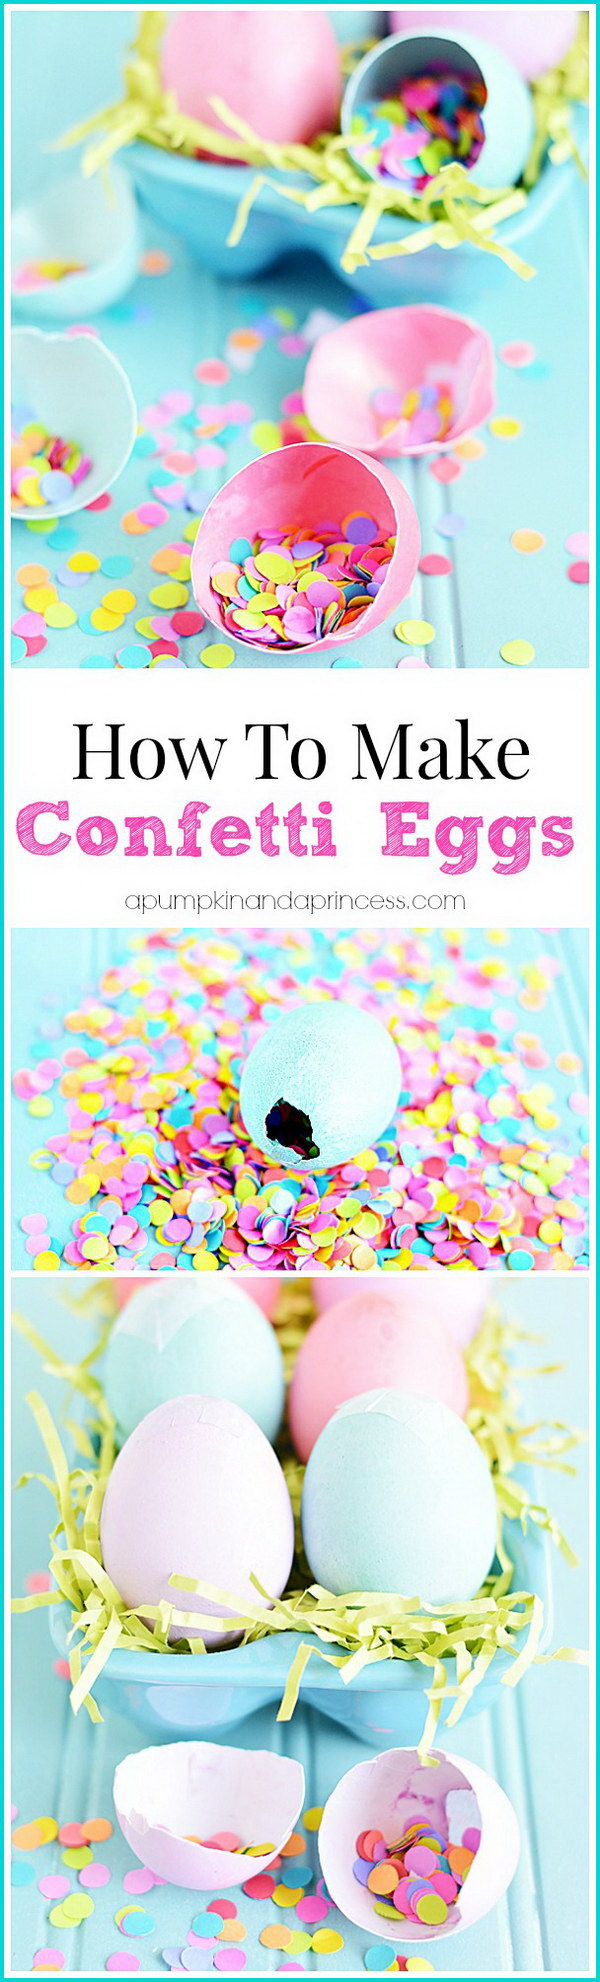 DIY Confetti Easter Eggs.